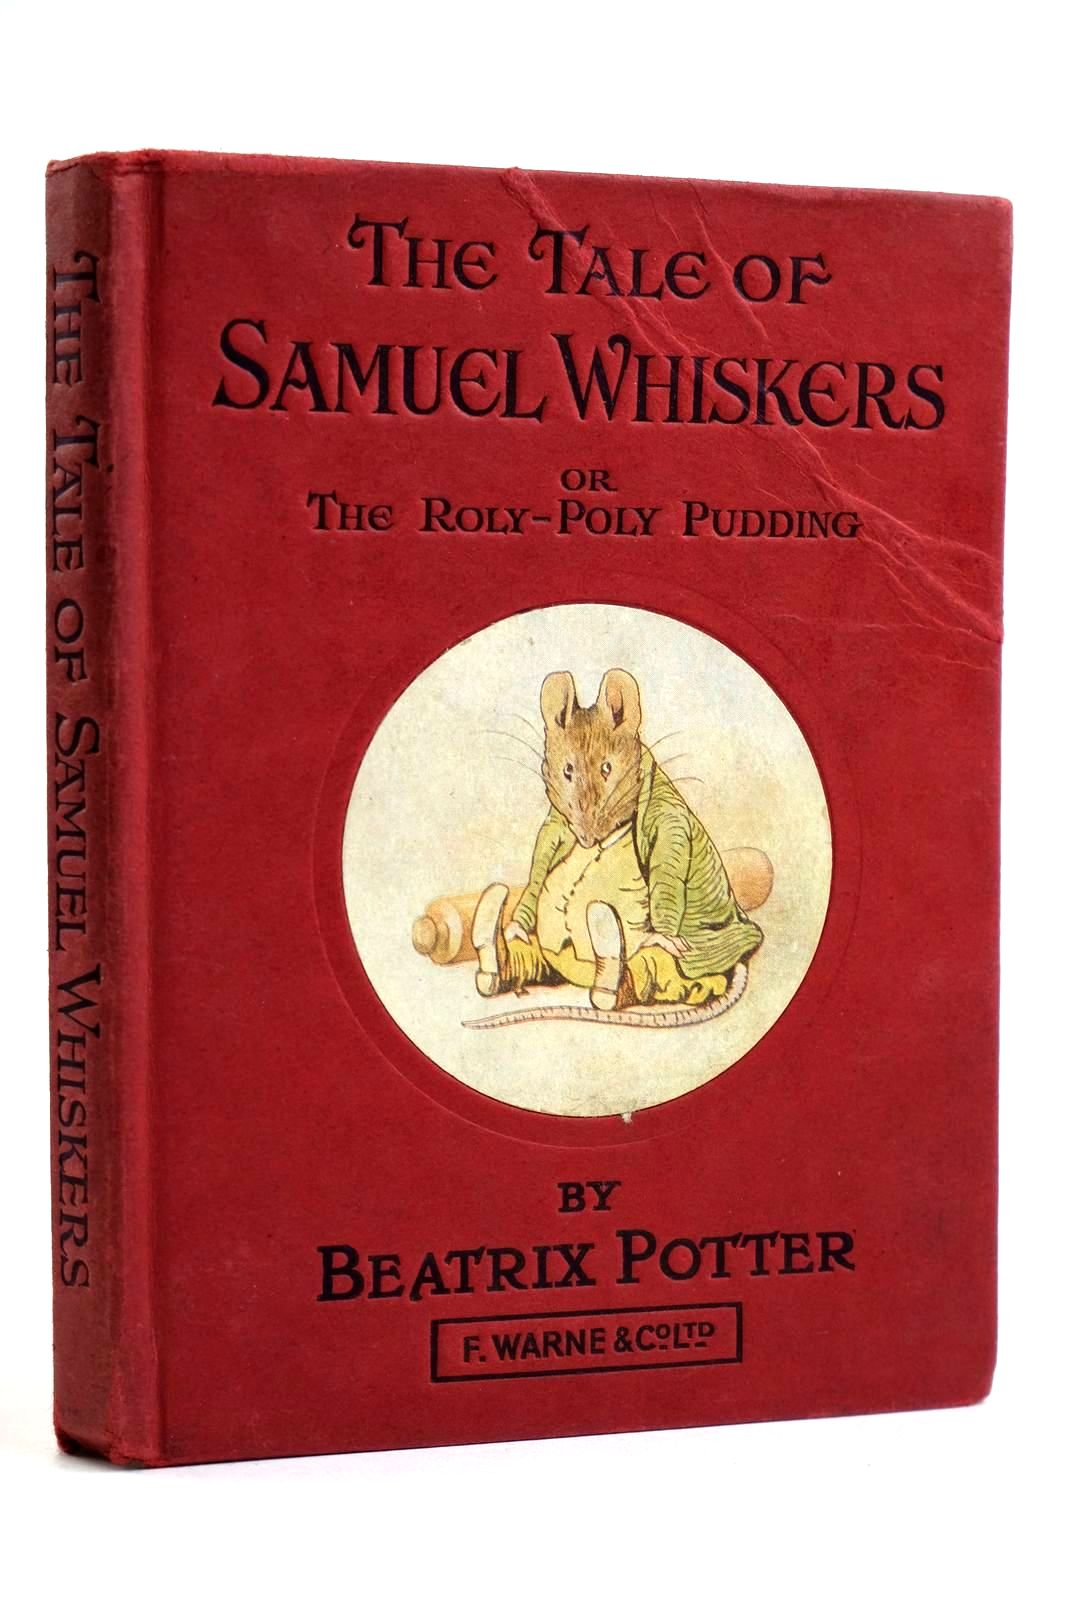 Photo of THE TALE OF SAMUEL WHISKERS OR THE ROLY-POLY PUDDING- Stock Number: 2132071